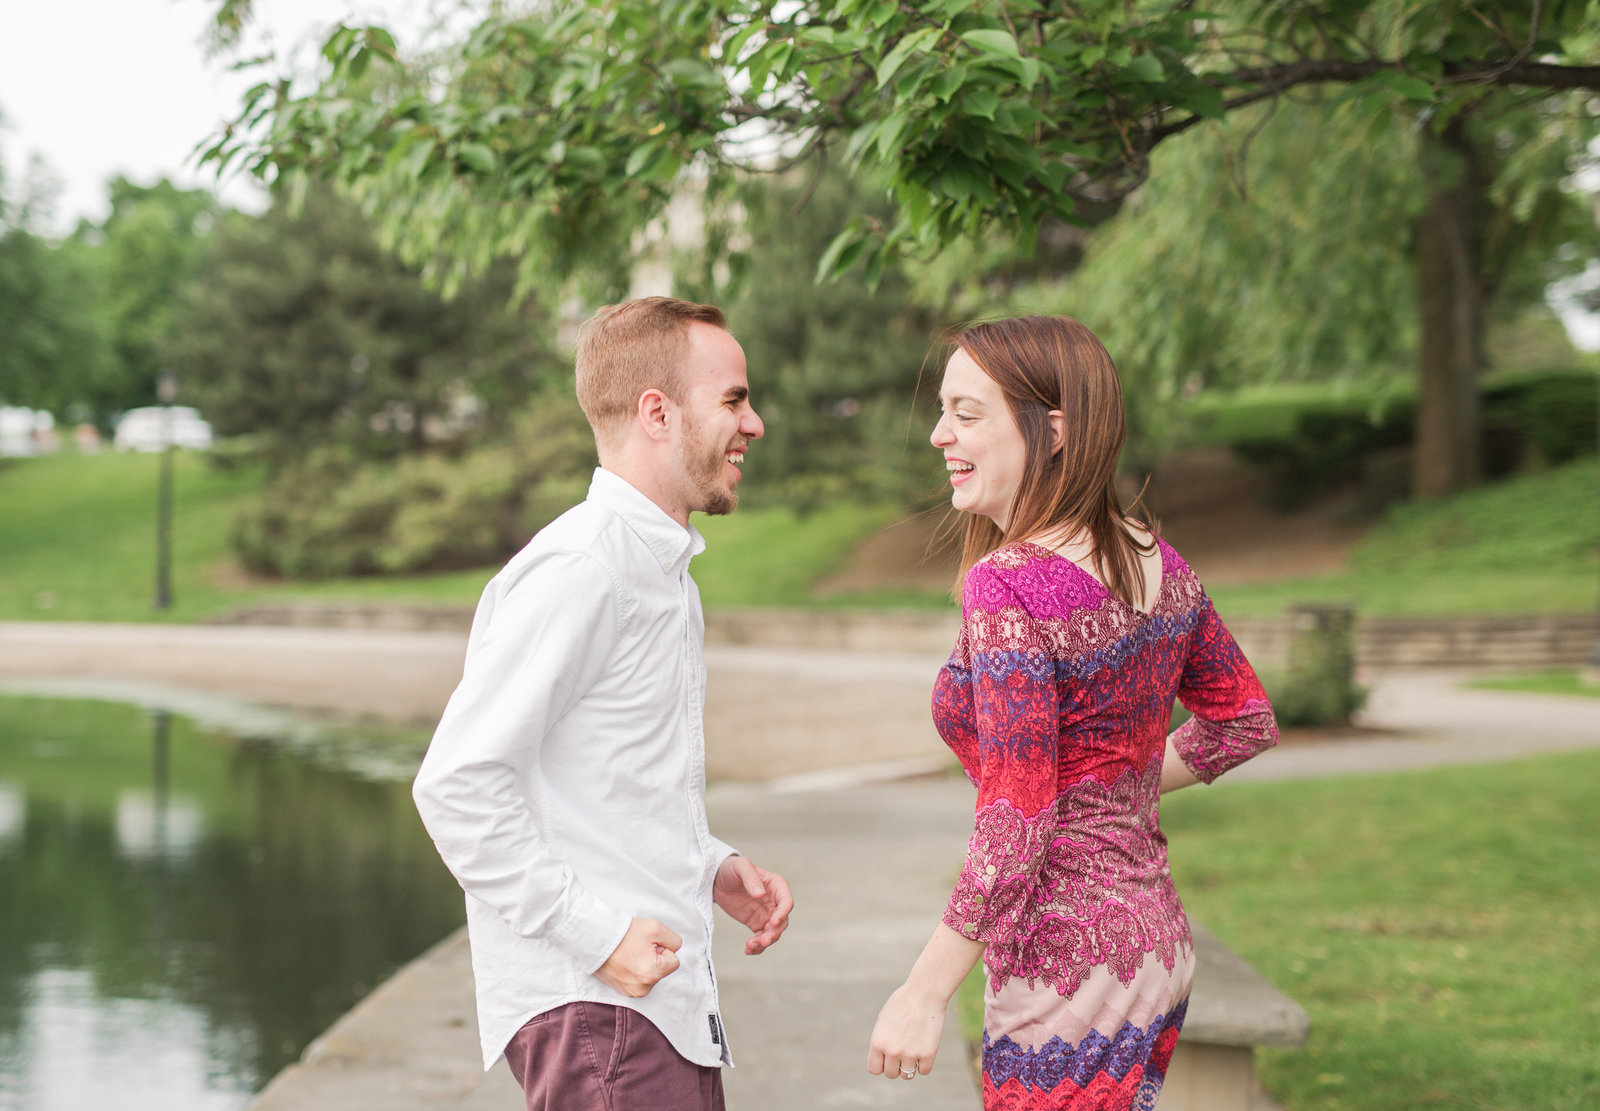 cleveland-art-museum-engagement-session-allison-ewing-photography-010-1